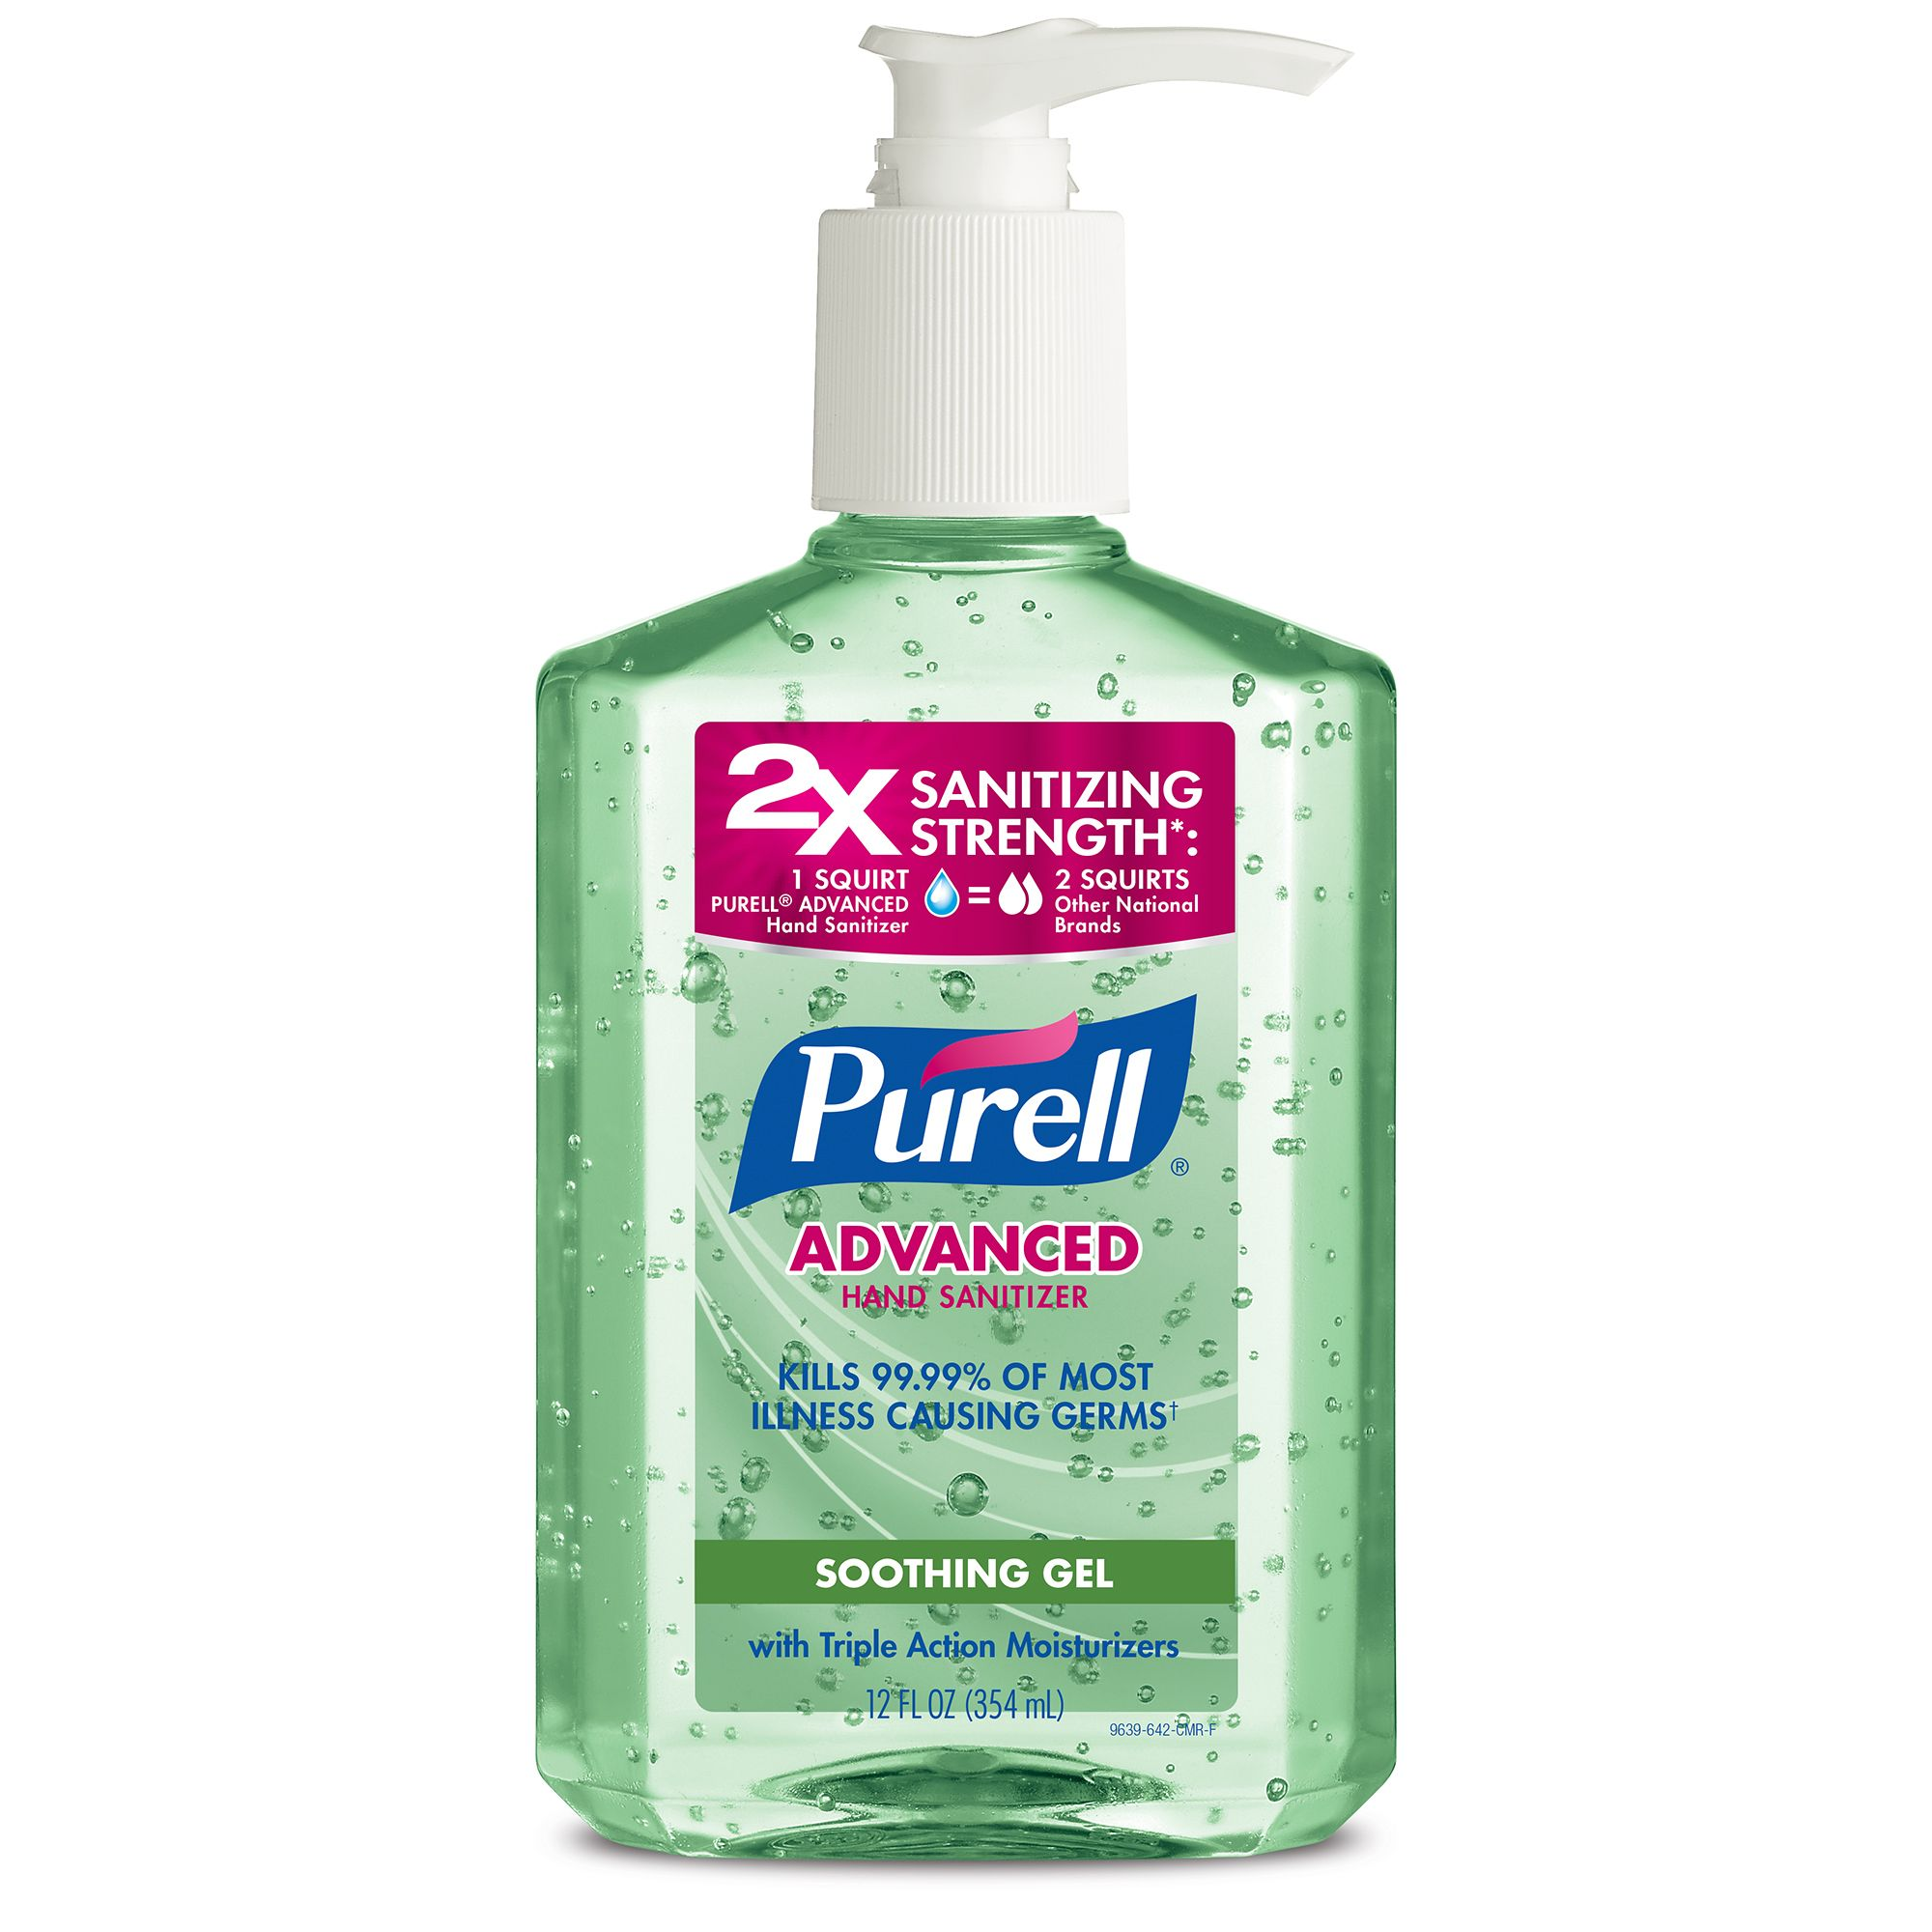 Details About Purell Hand Sanitizer 8oz 2x Sanitizing Strength